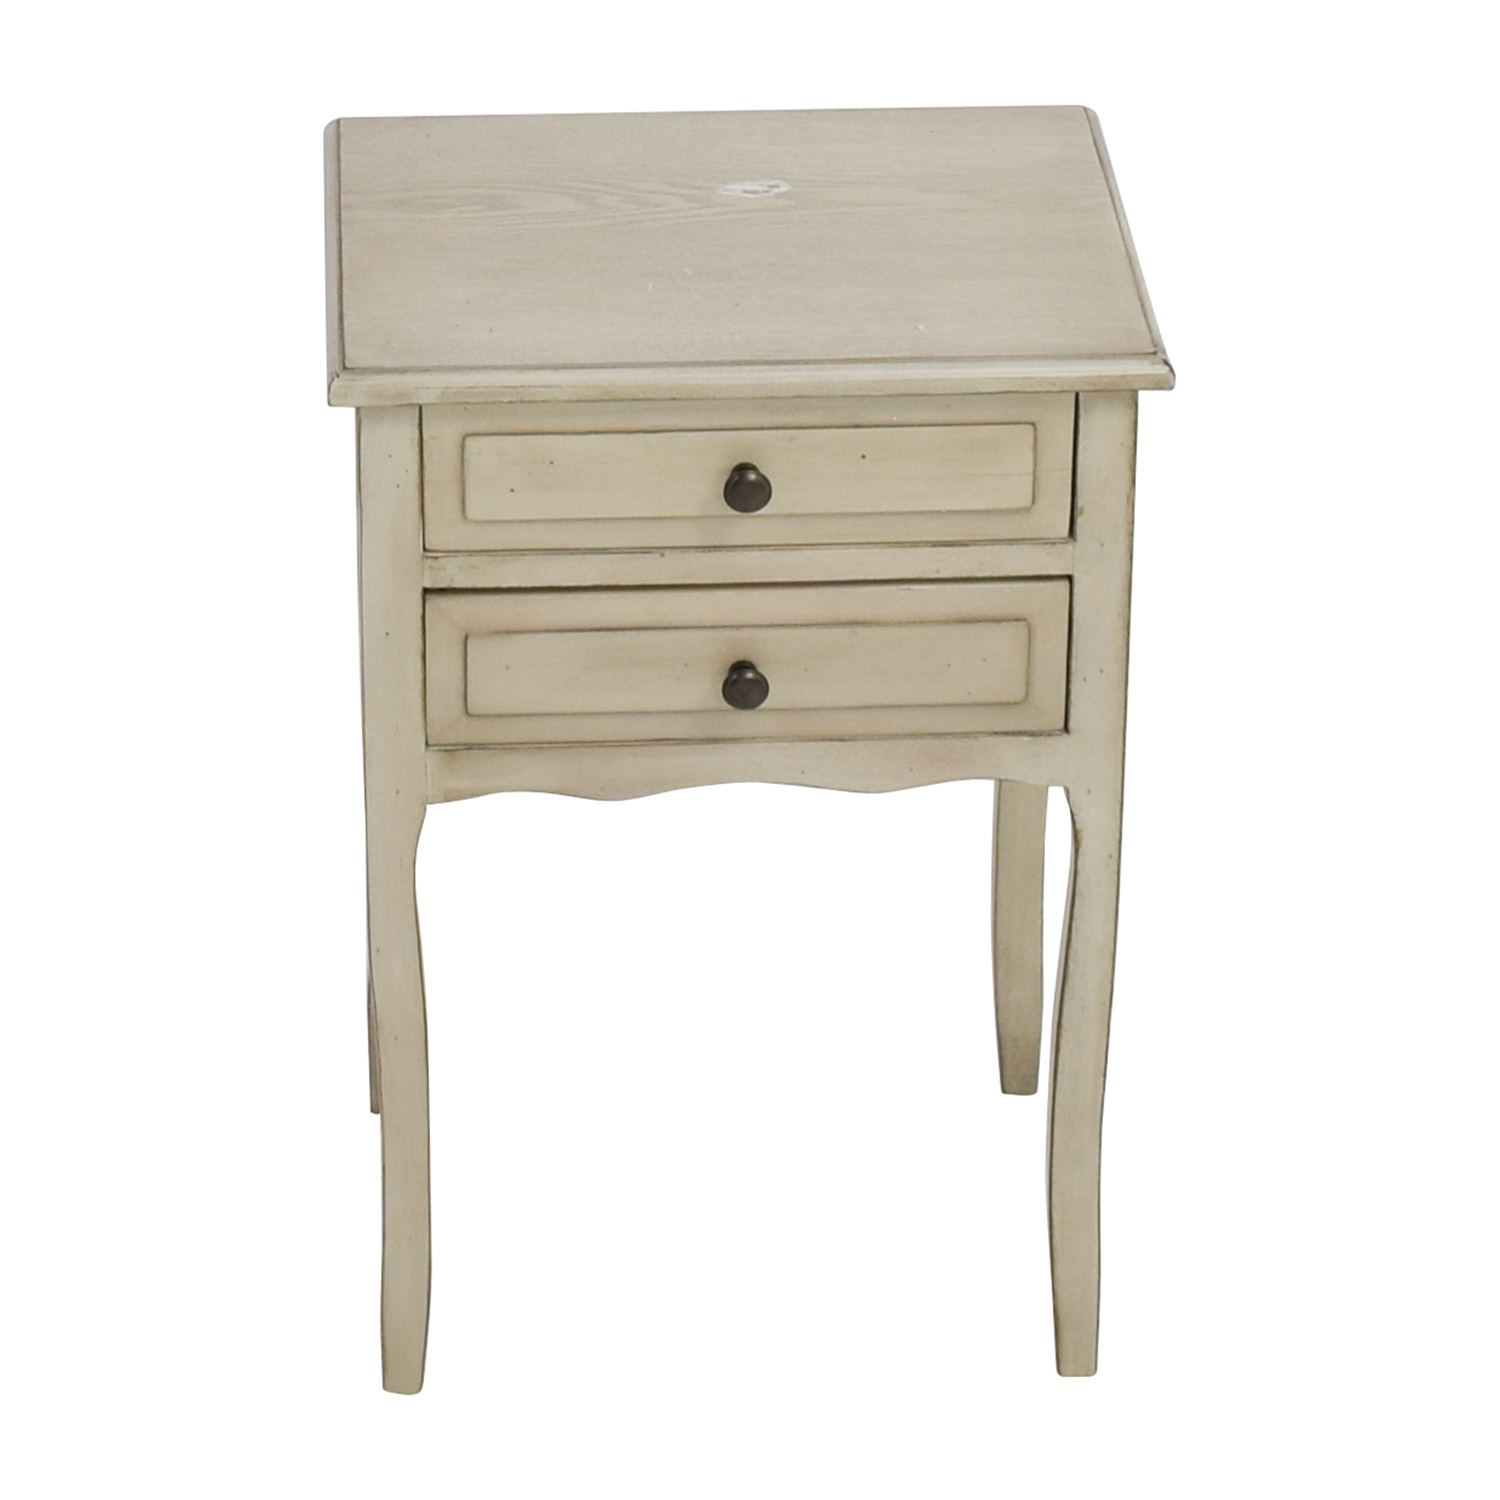 ... Buy Safavieh Lori White Birch End Table Safavieh Tables ...